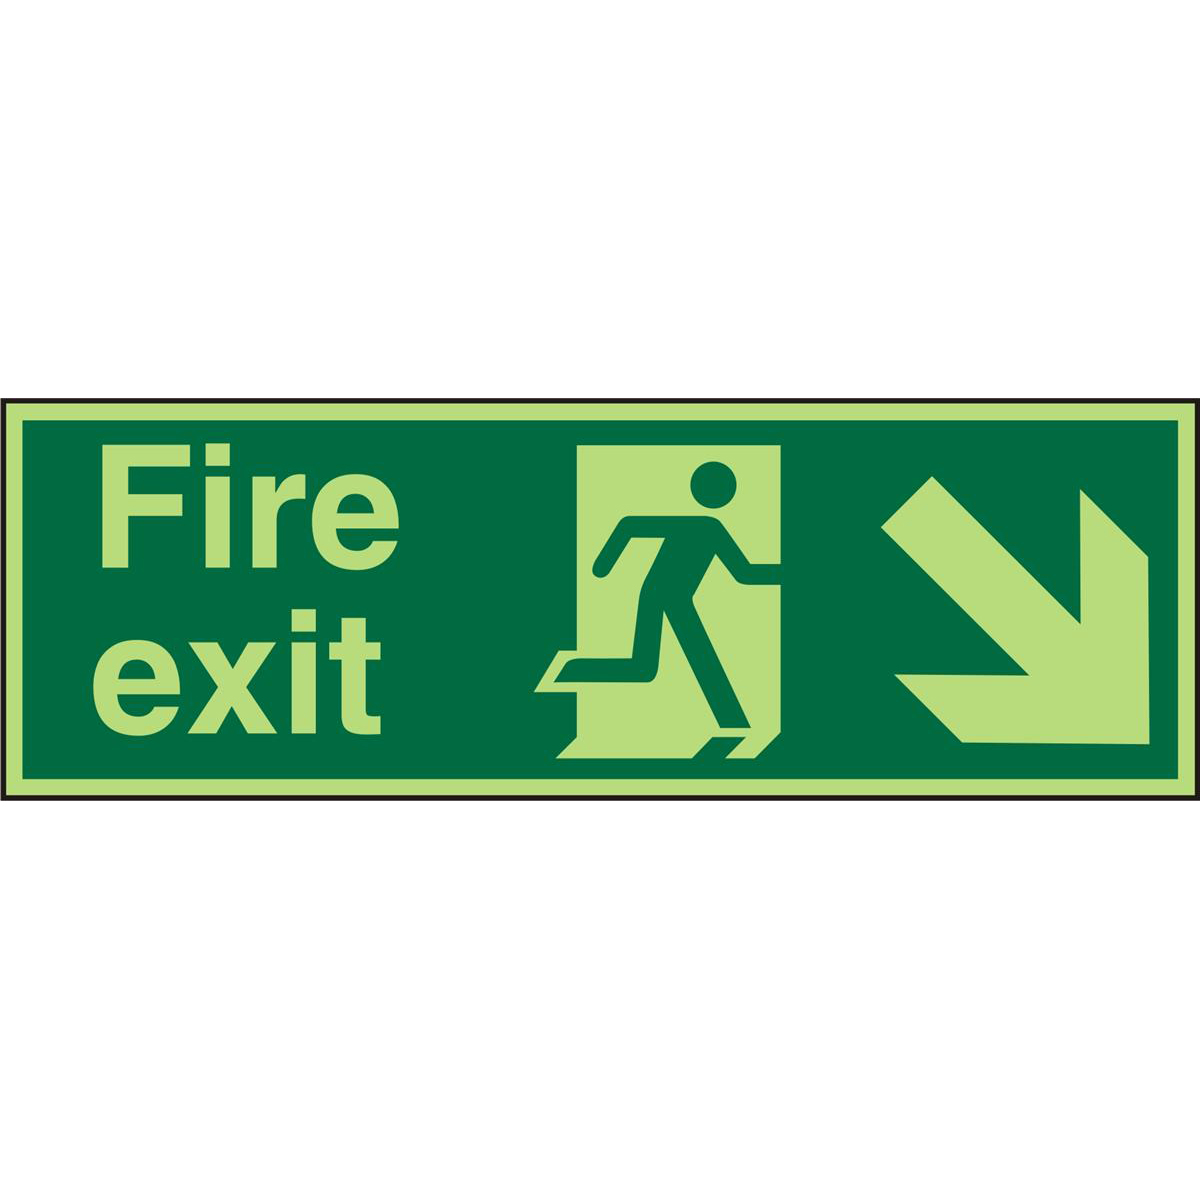 Photolum Sign 2mm 300x100 FireExit Man Run Right&Arrow brhc Ref PACSP123300x100 *Up to 10 Day Leadtime*